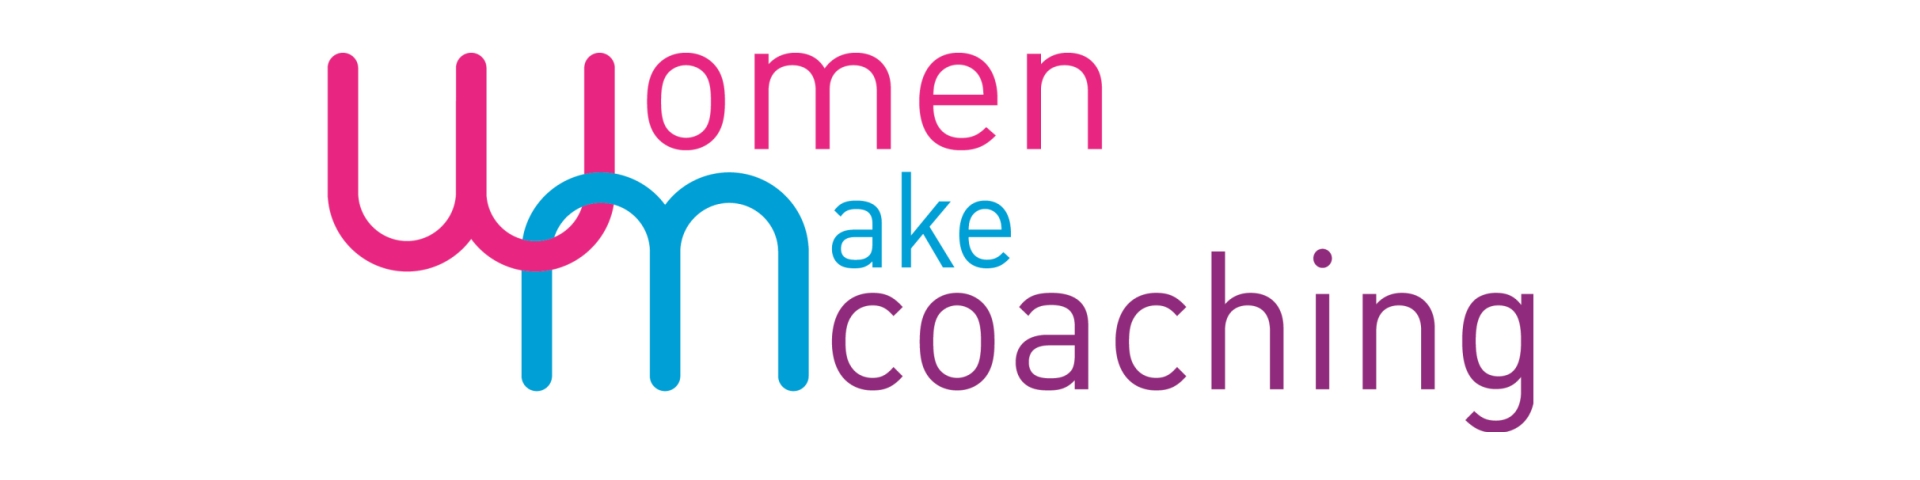 Women Make Coaching